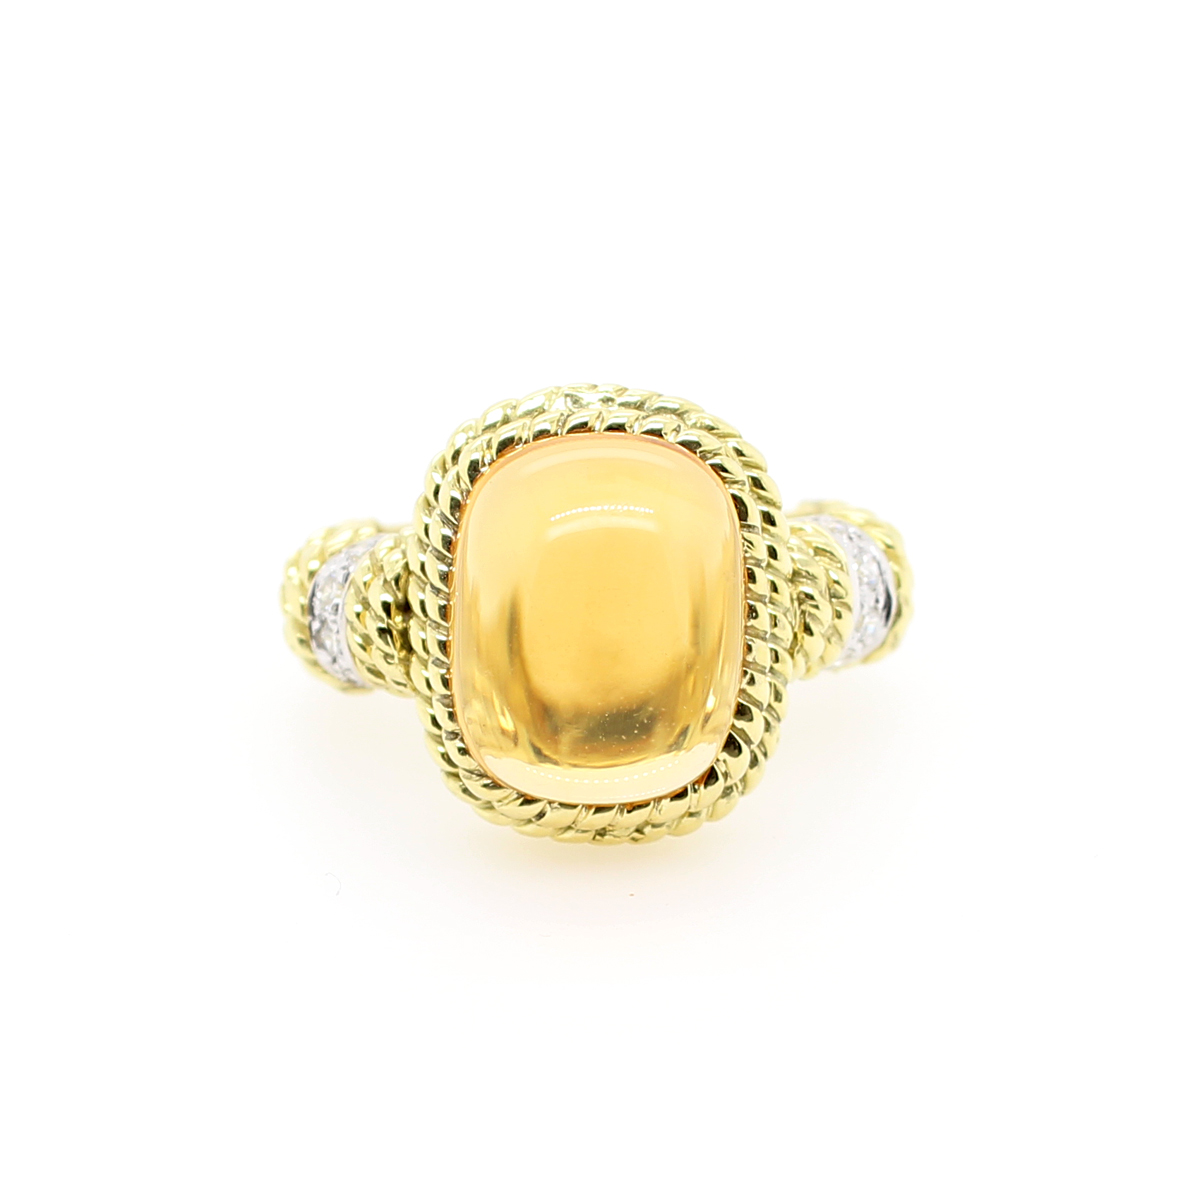 18 Karat Yellow Gold Cabochon Citrine and Diamond Ring